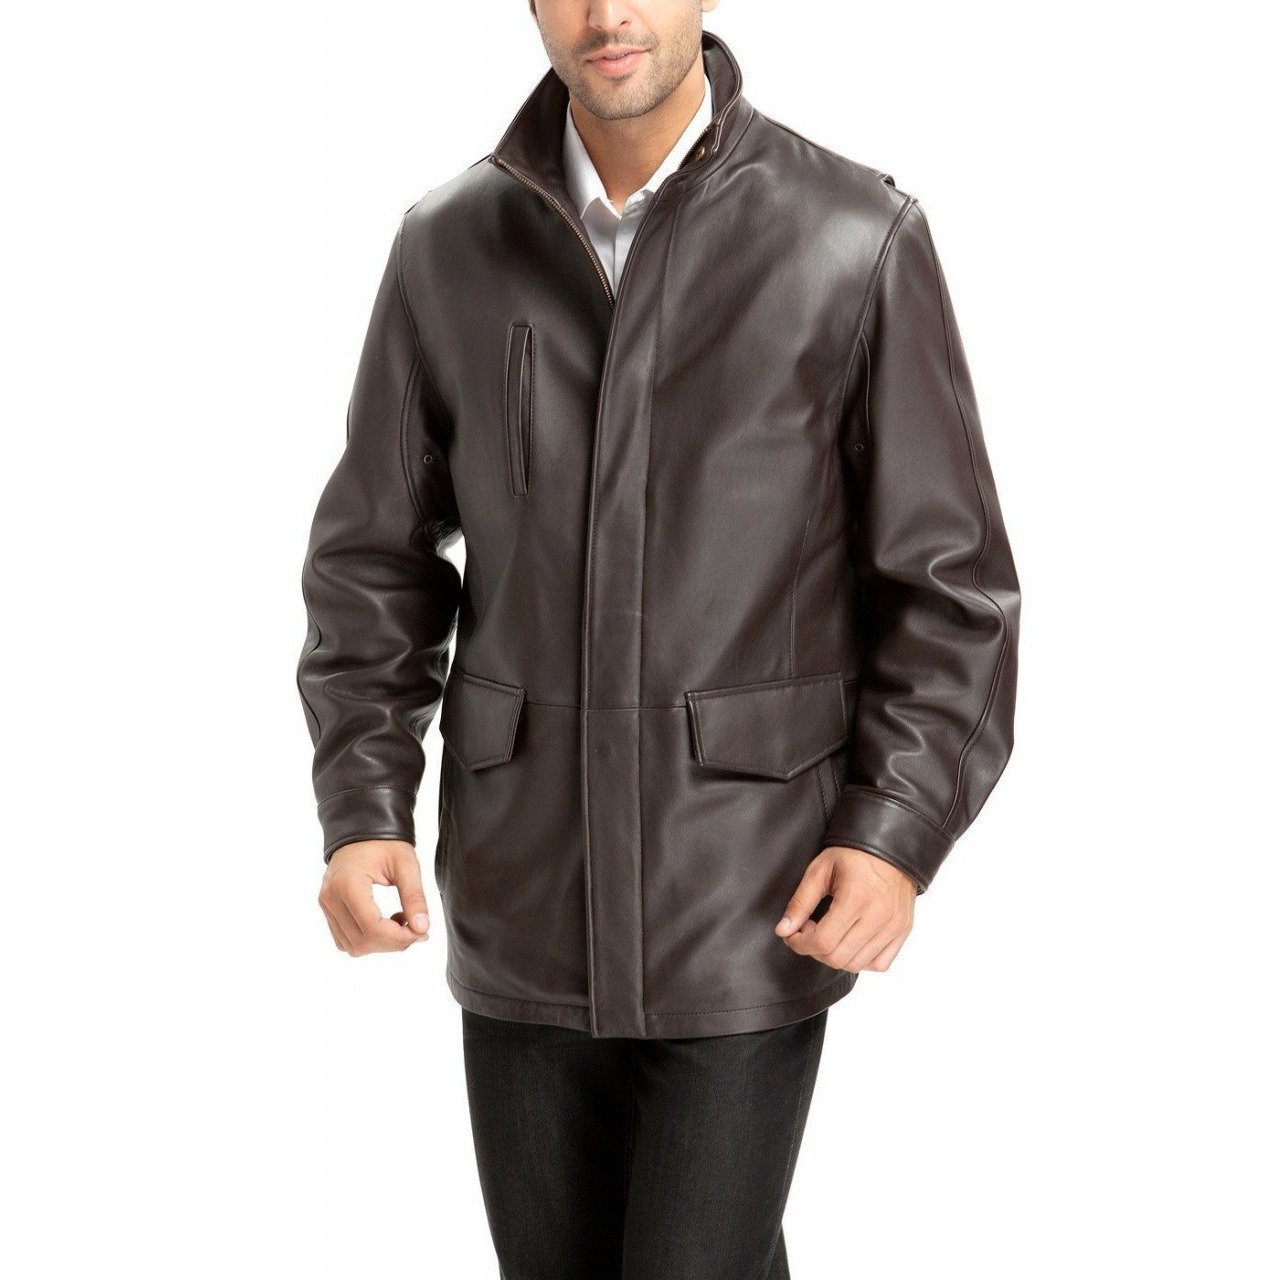 Leather Coat - Men's Java Brown Casual Leather Coat